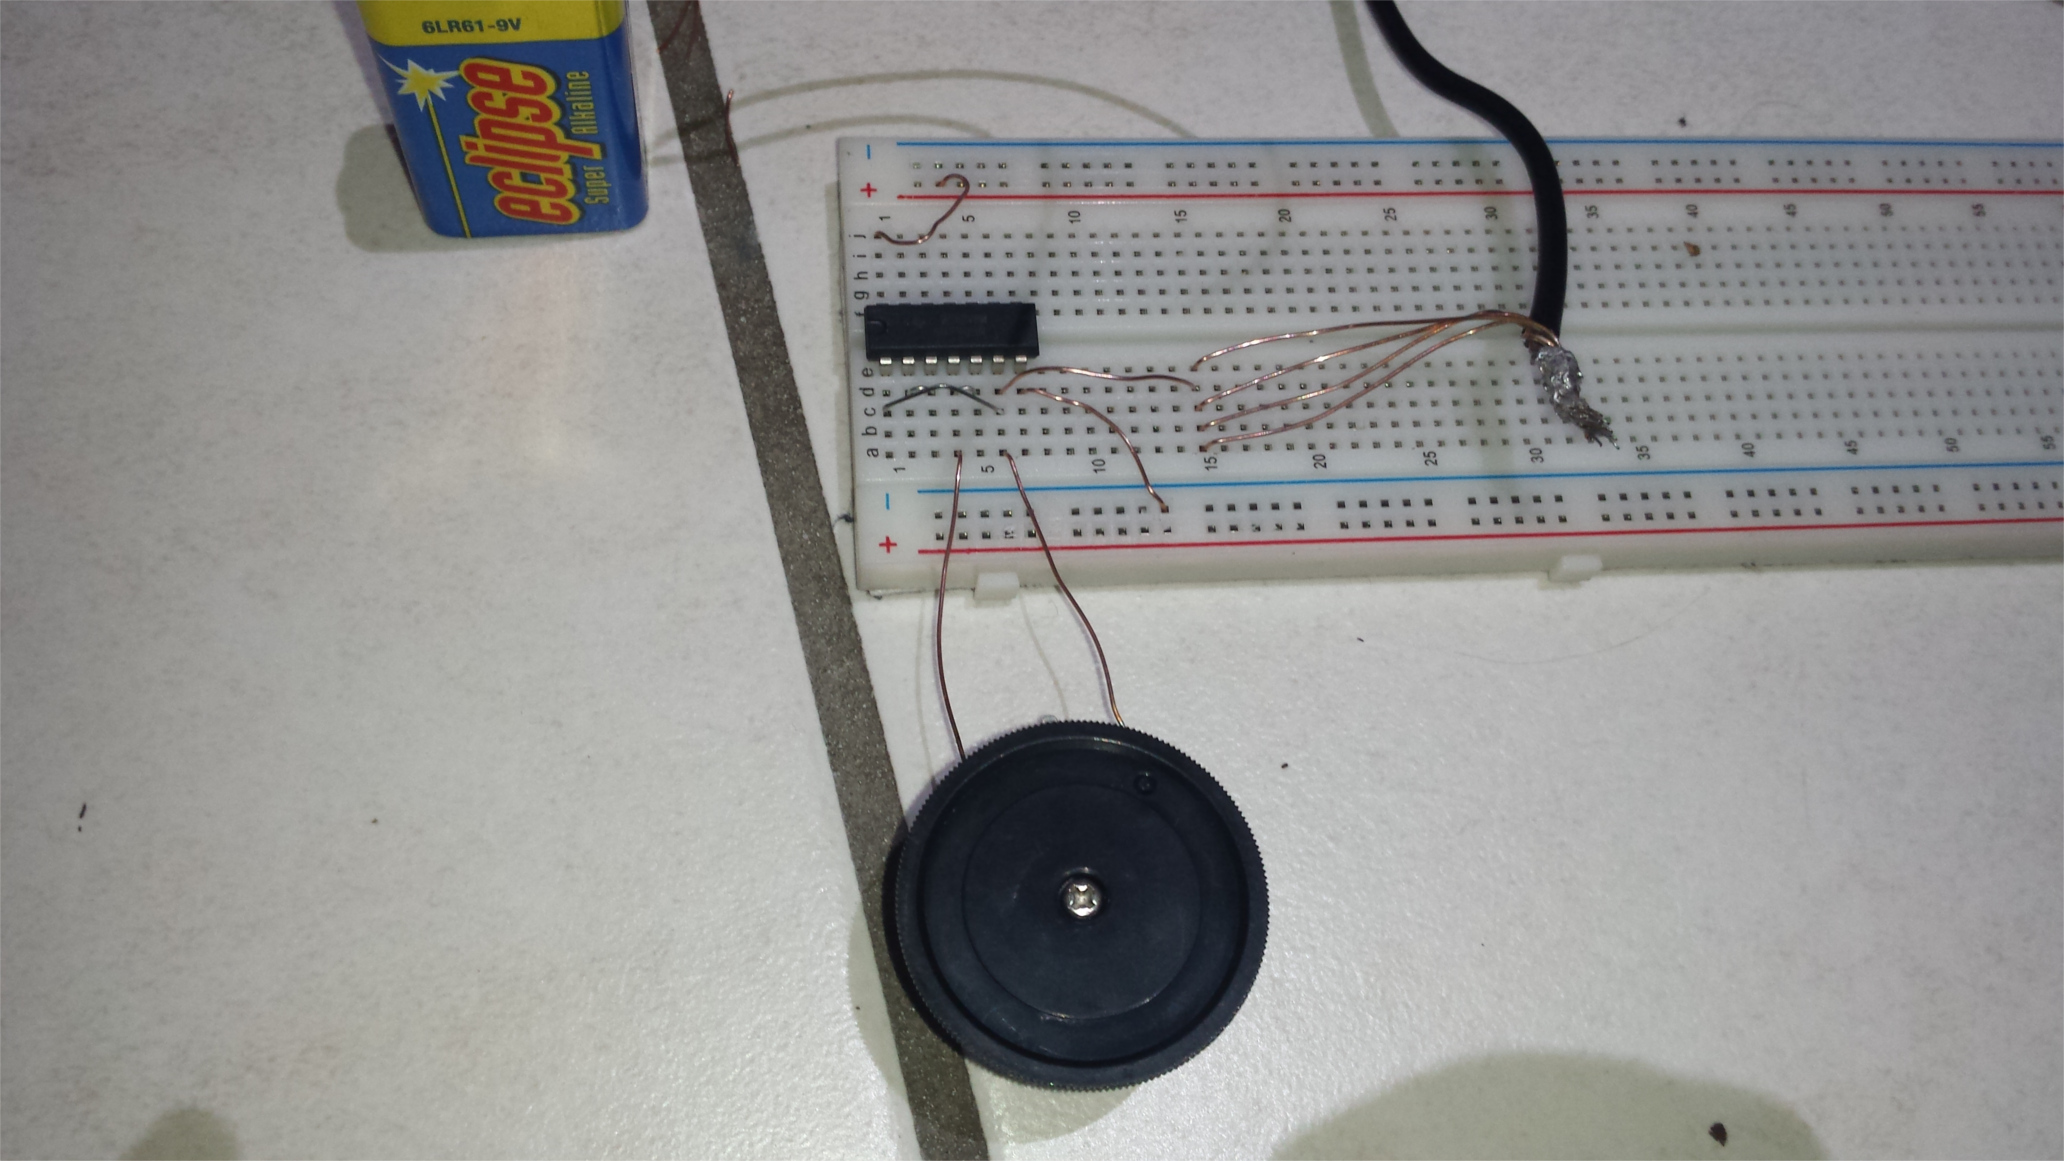 Diy do it yourself diy do it yourself solutioingenieria Image collections